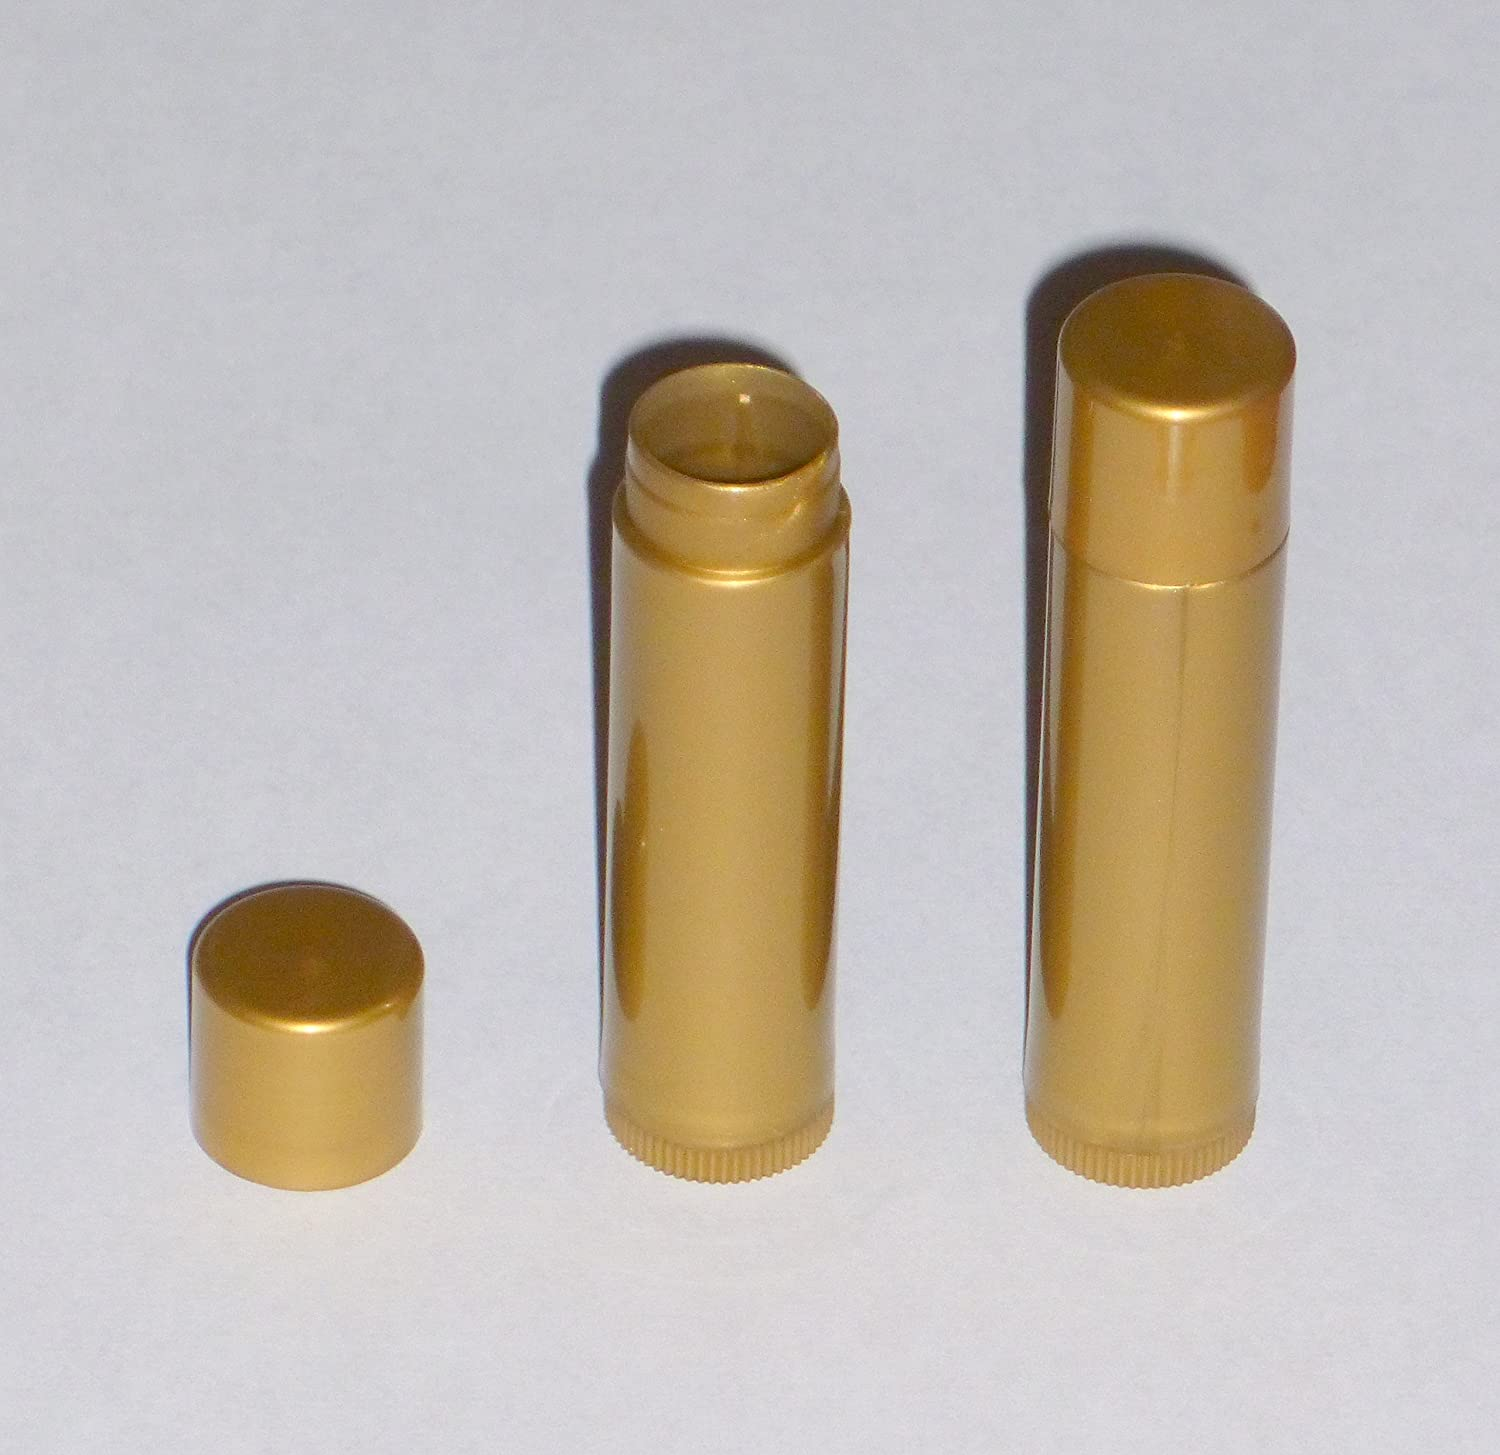 50 NEW Empty GOLD PEARL Lip Balm Chapstick Tubes Containers .15 oz / 5 ml Tube Make Your Own Chapstick Lip Balm DIY At Home with Caps